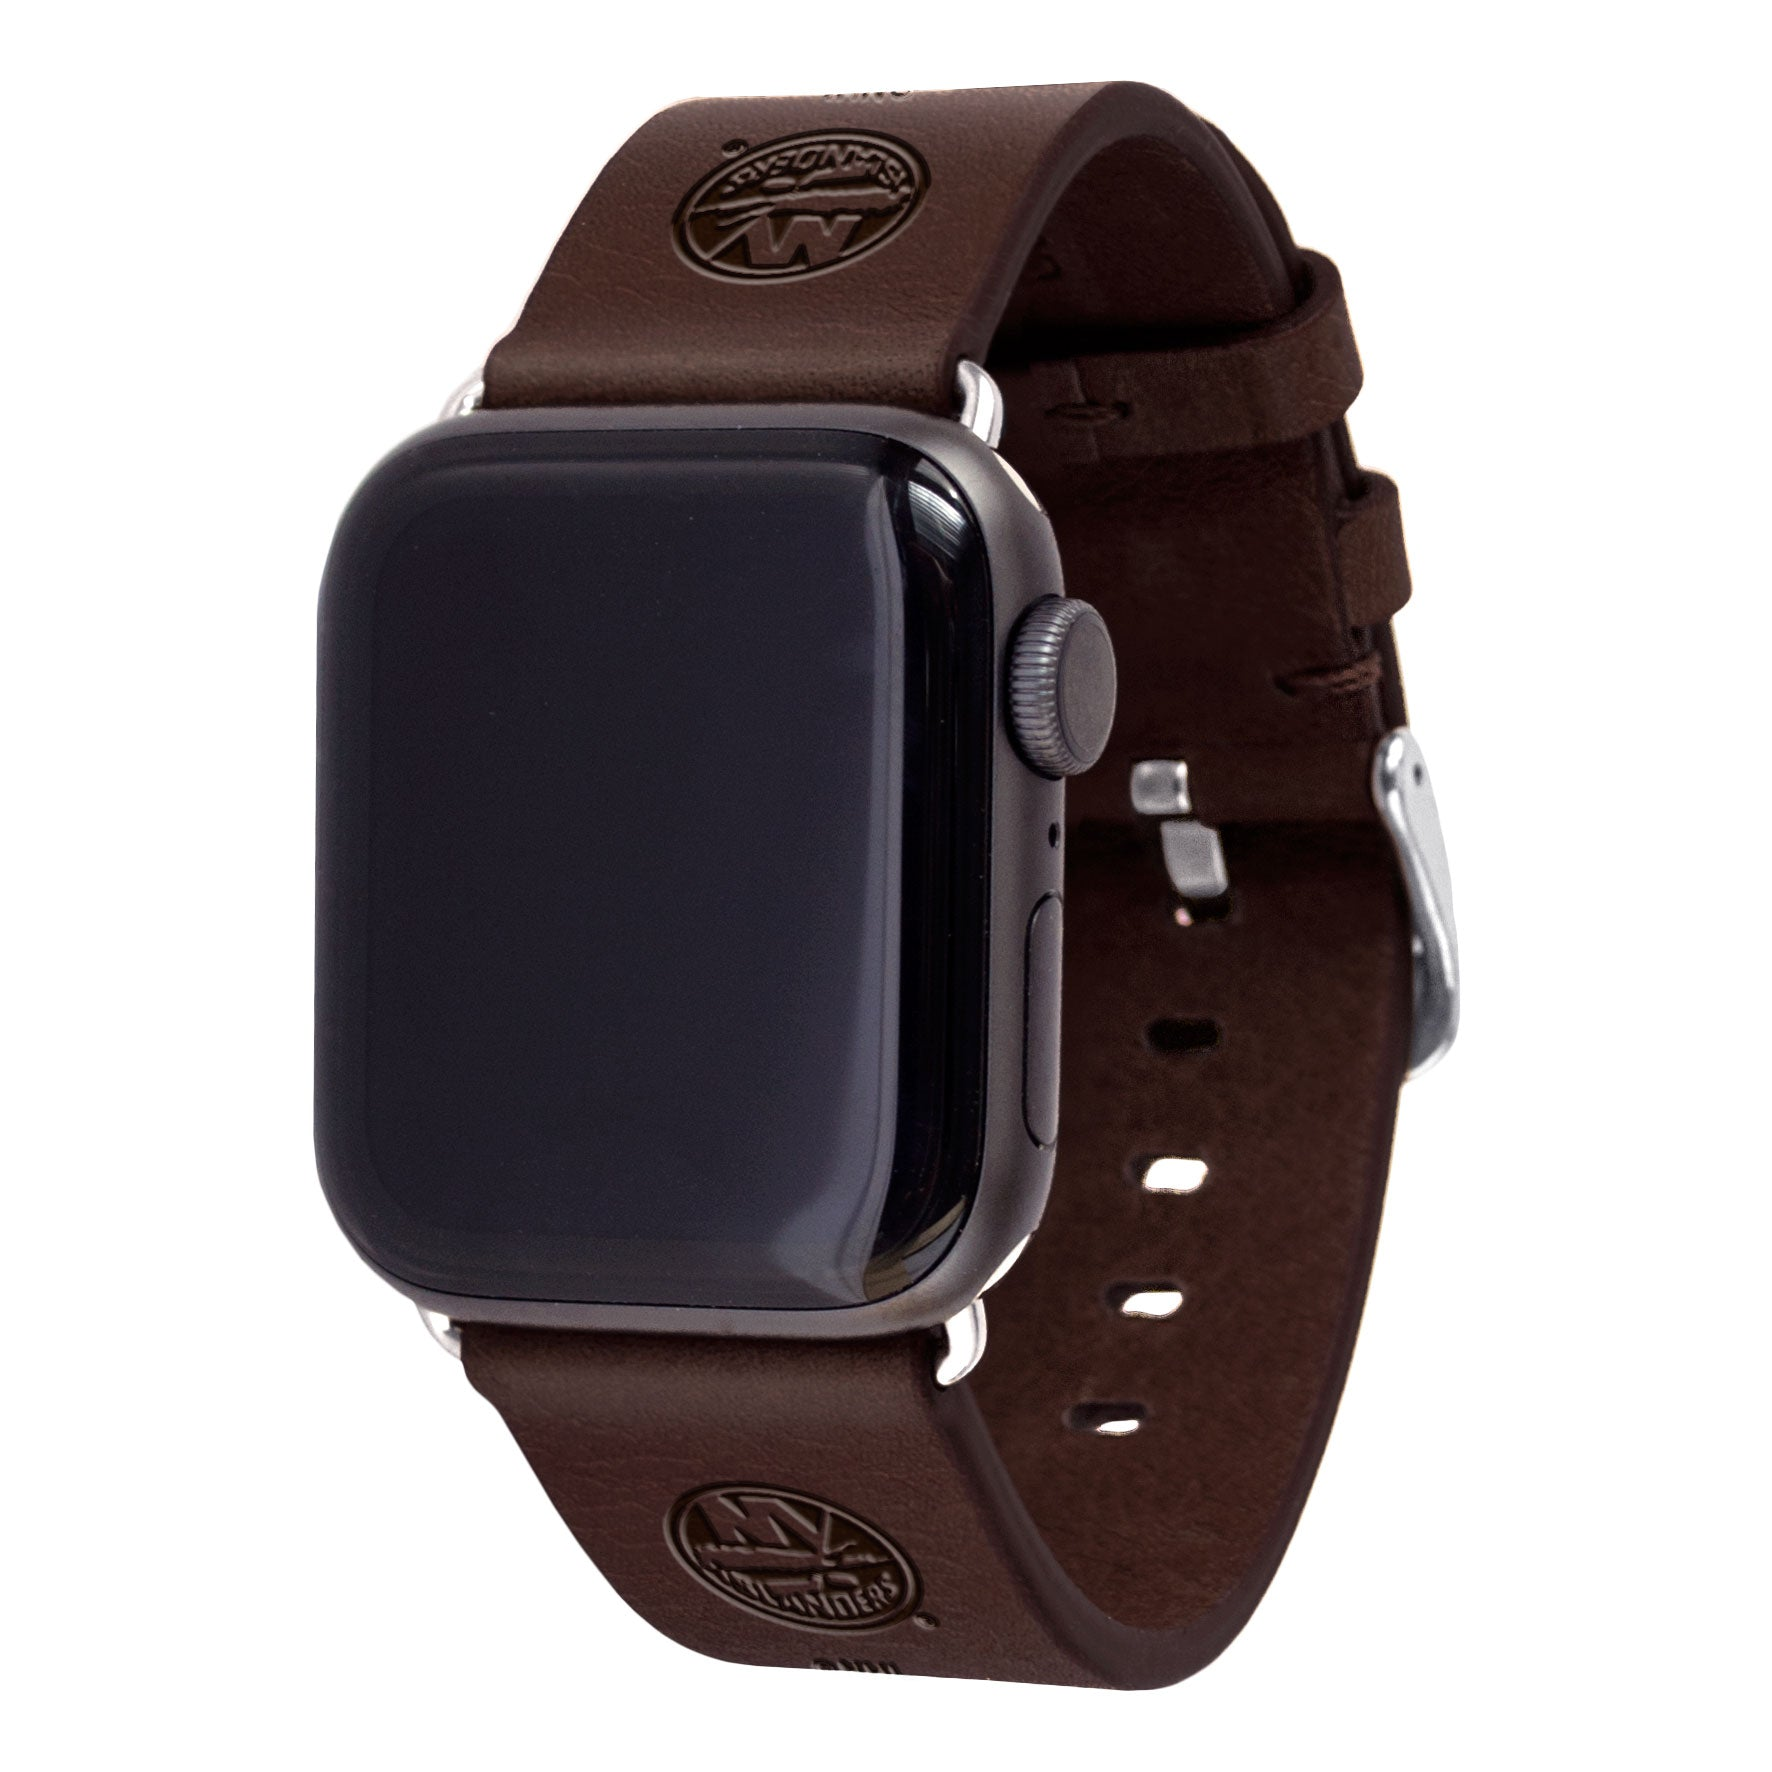 New York Islanders Leather Apple Watch Band - AffinityBands